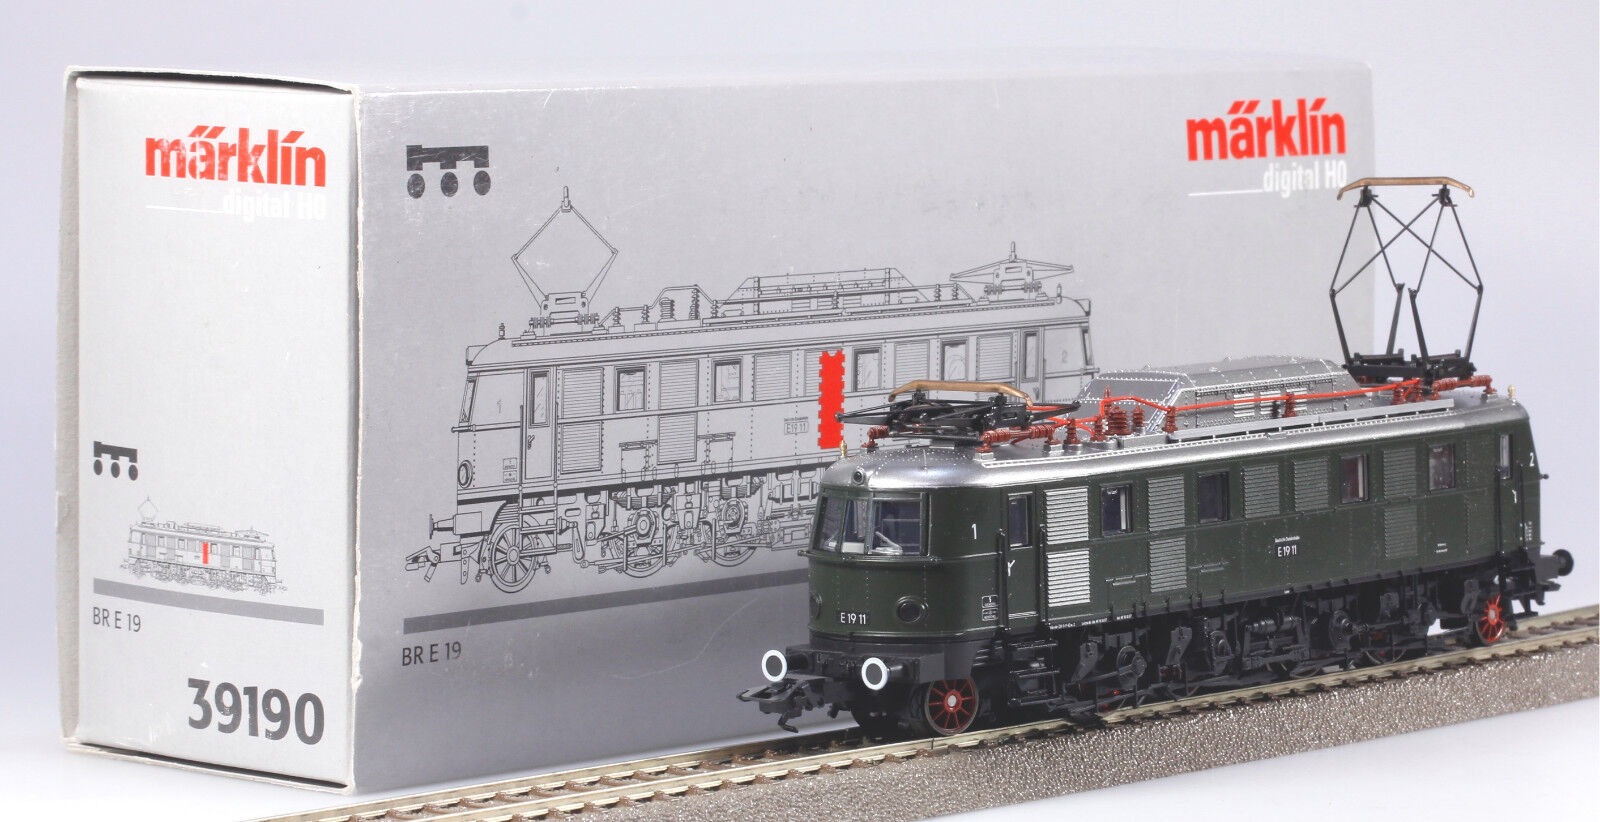 Märklin #39190 HO C-Sine Digital DB Class E19 Electric Locomotive New/Box 2002